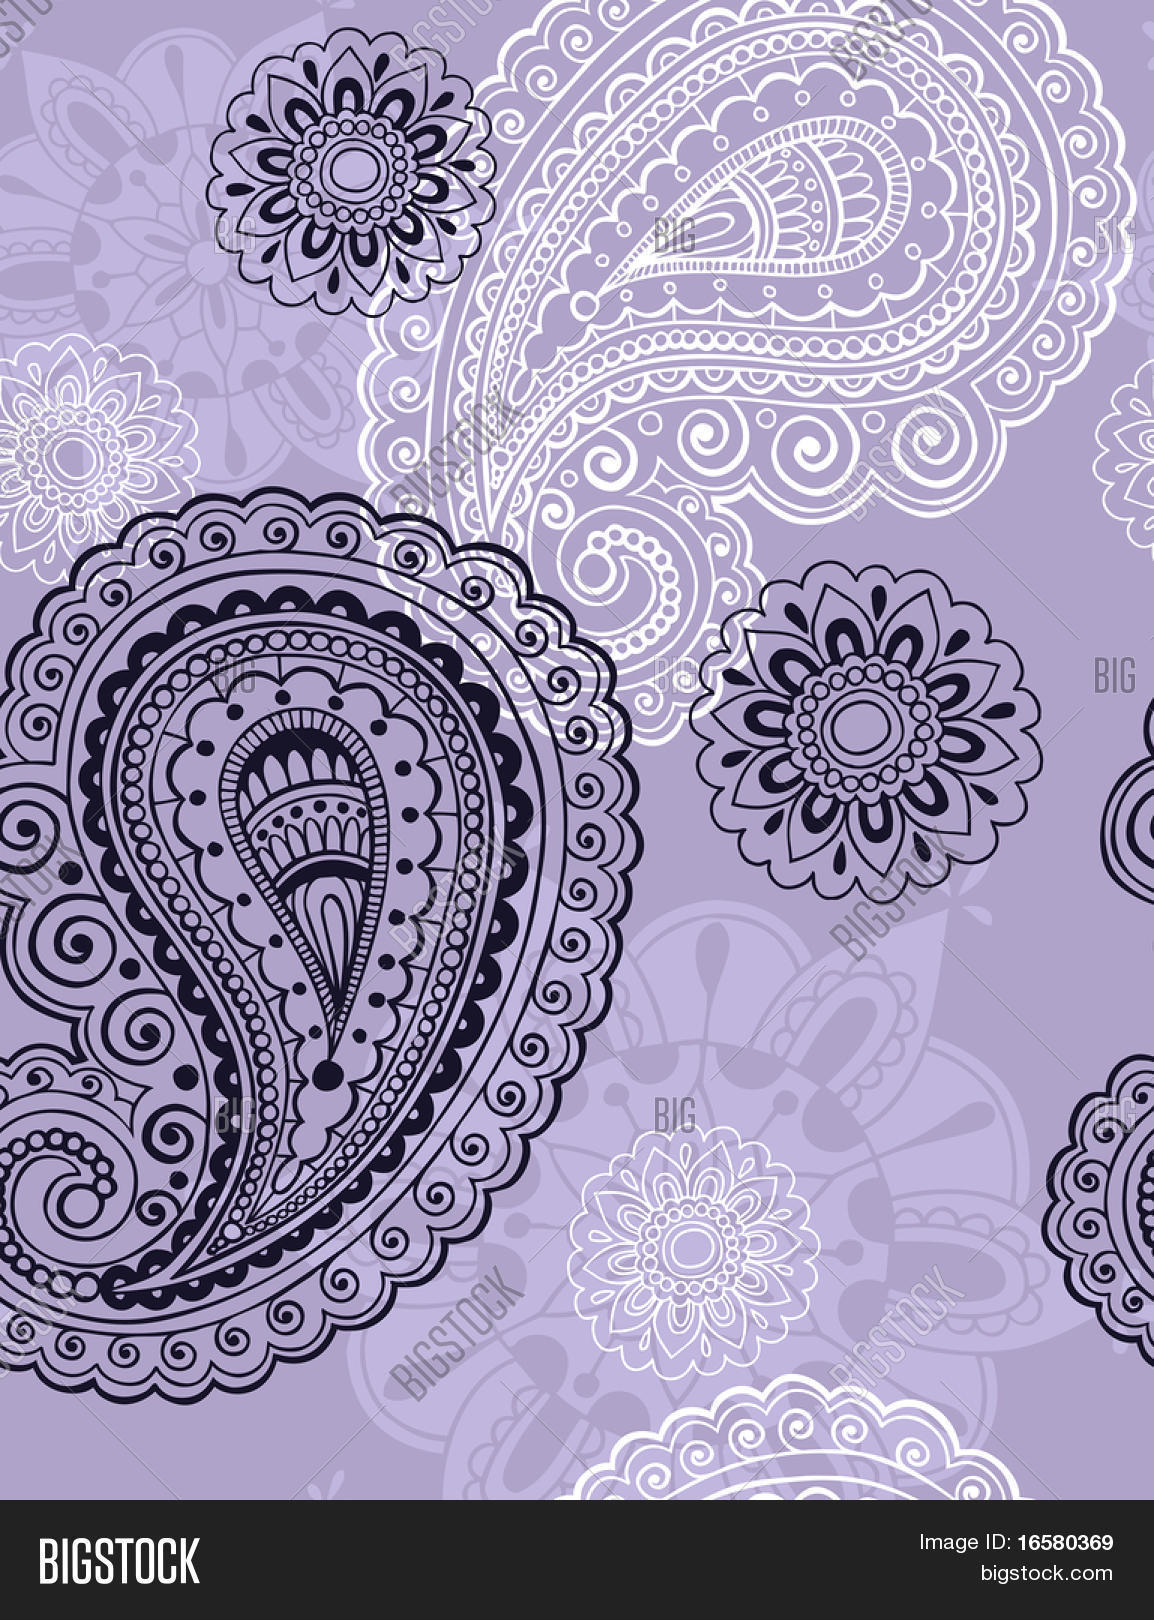 Seamless Repeat Vector Photo Free Trial Bigstock